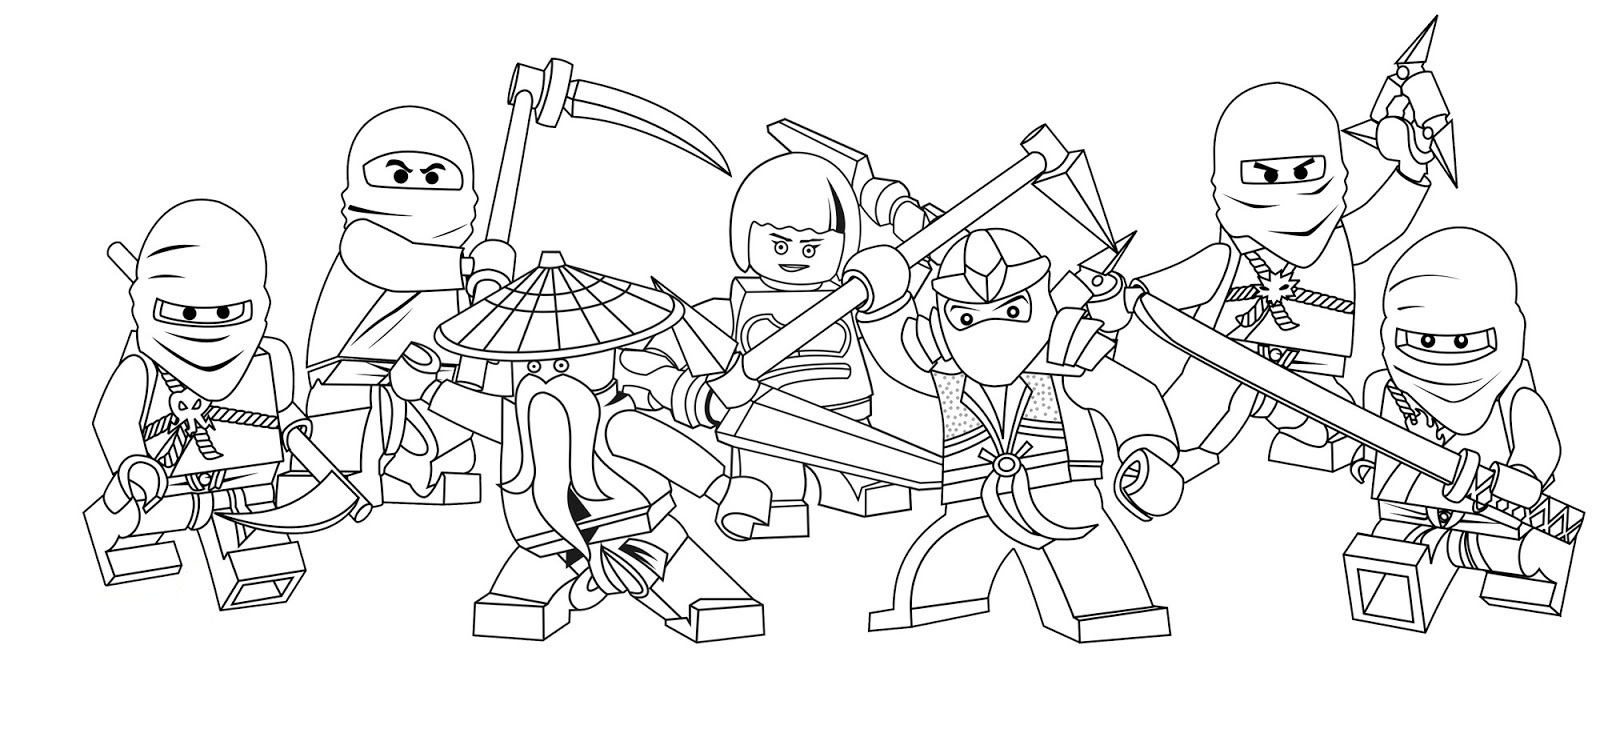 ninjago coloring pages printable,printable,coloring pages